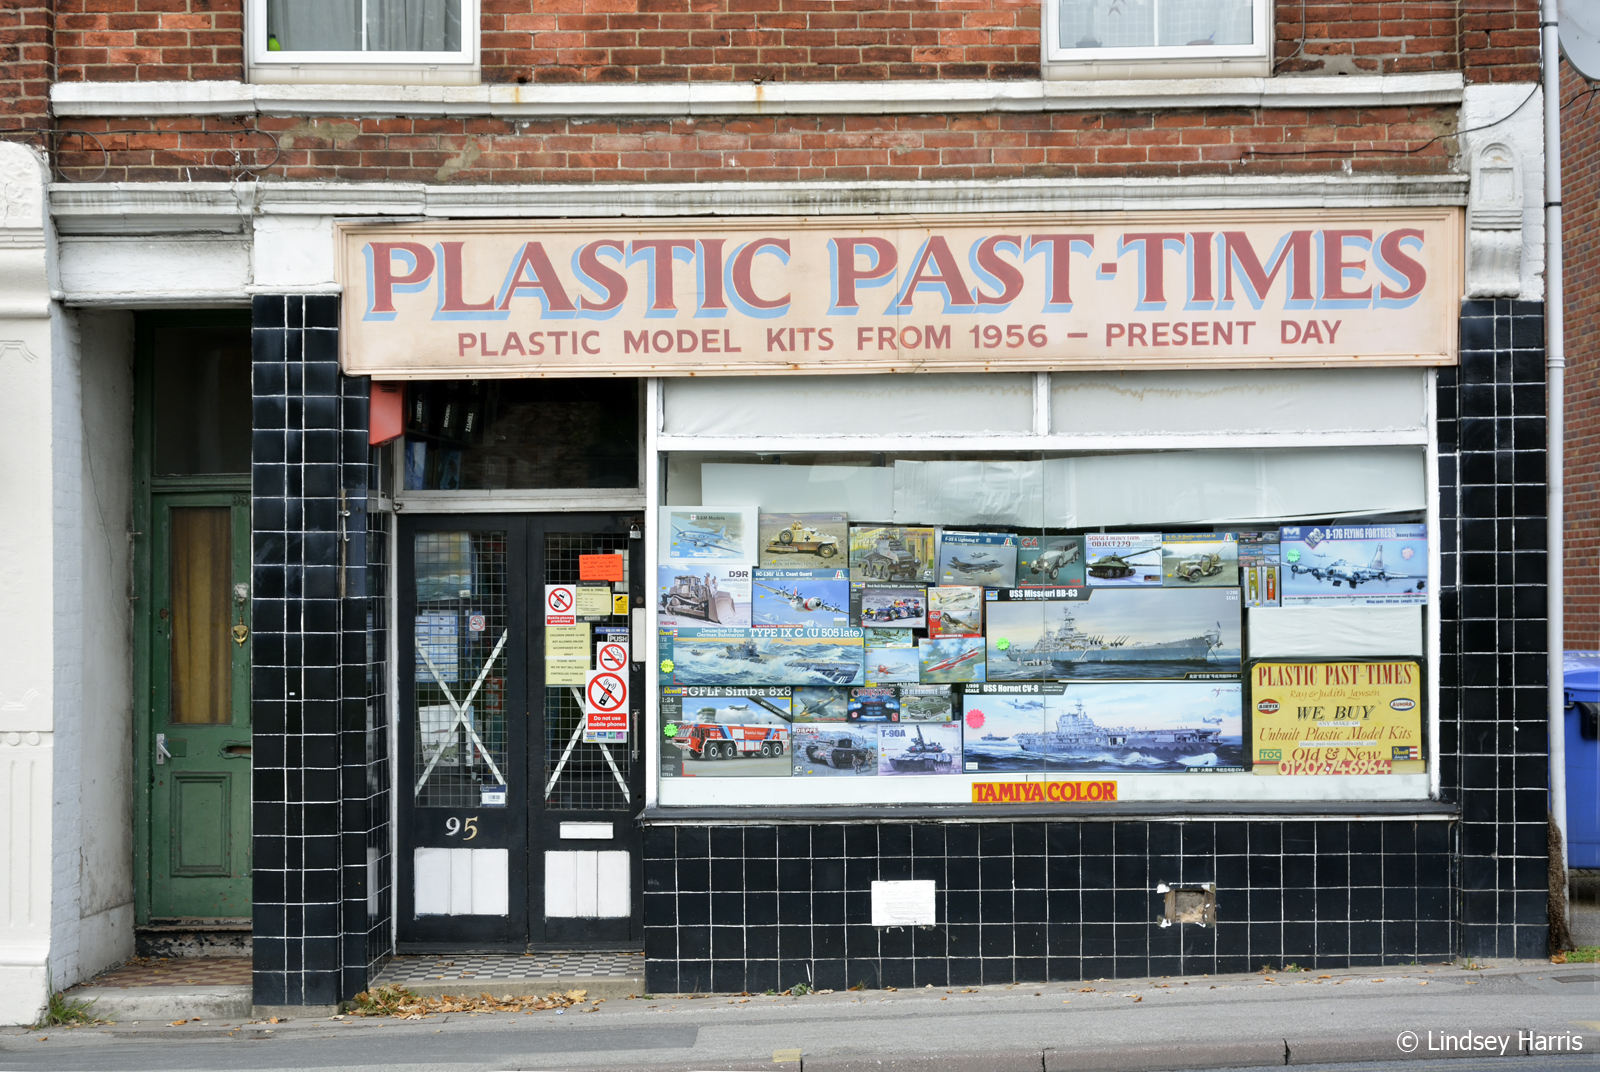 Plastic Past-Times, Commercial Road, Ashley Cross, Lower Parkstone, Poole, Dorset